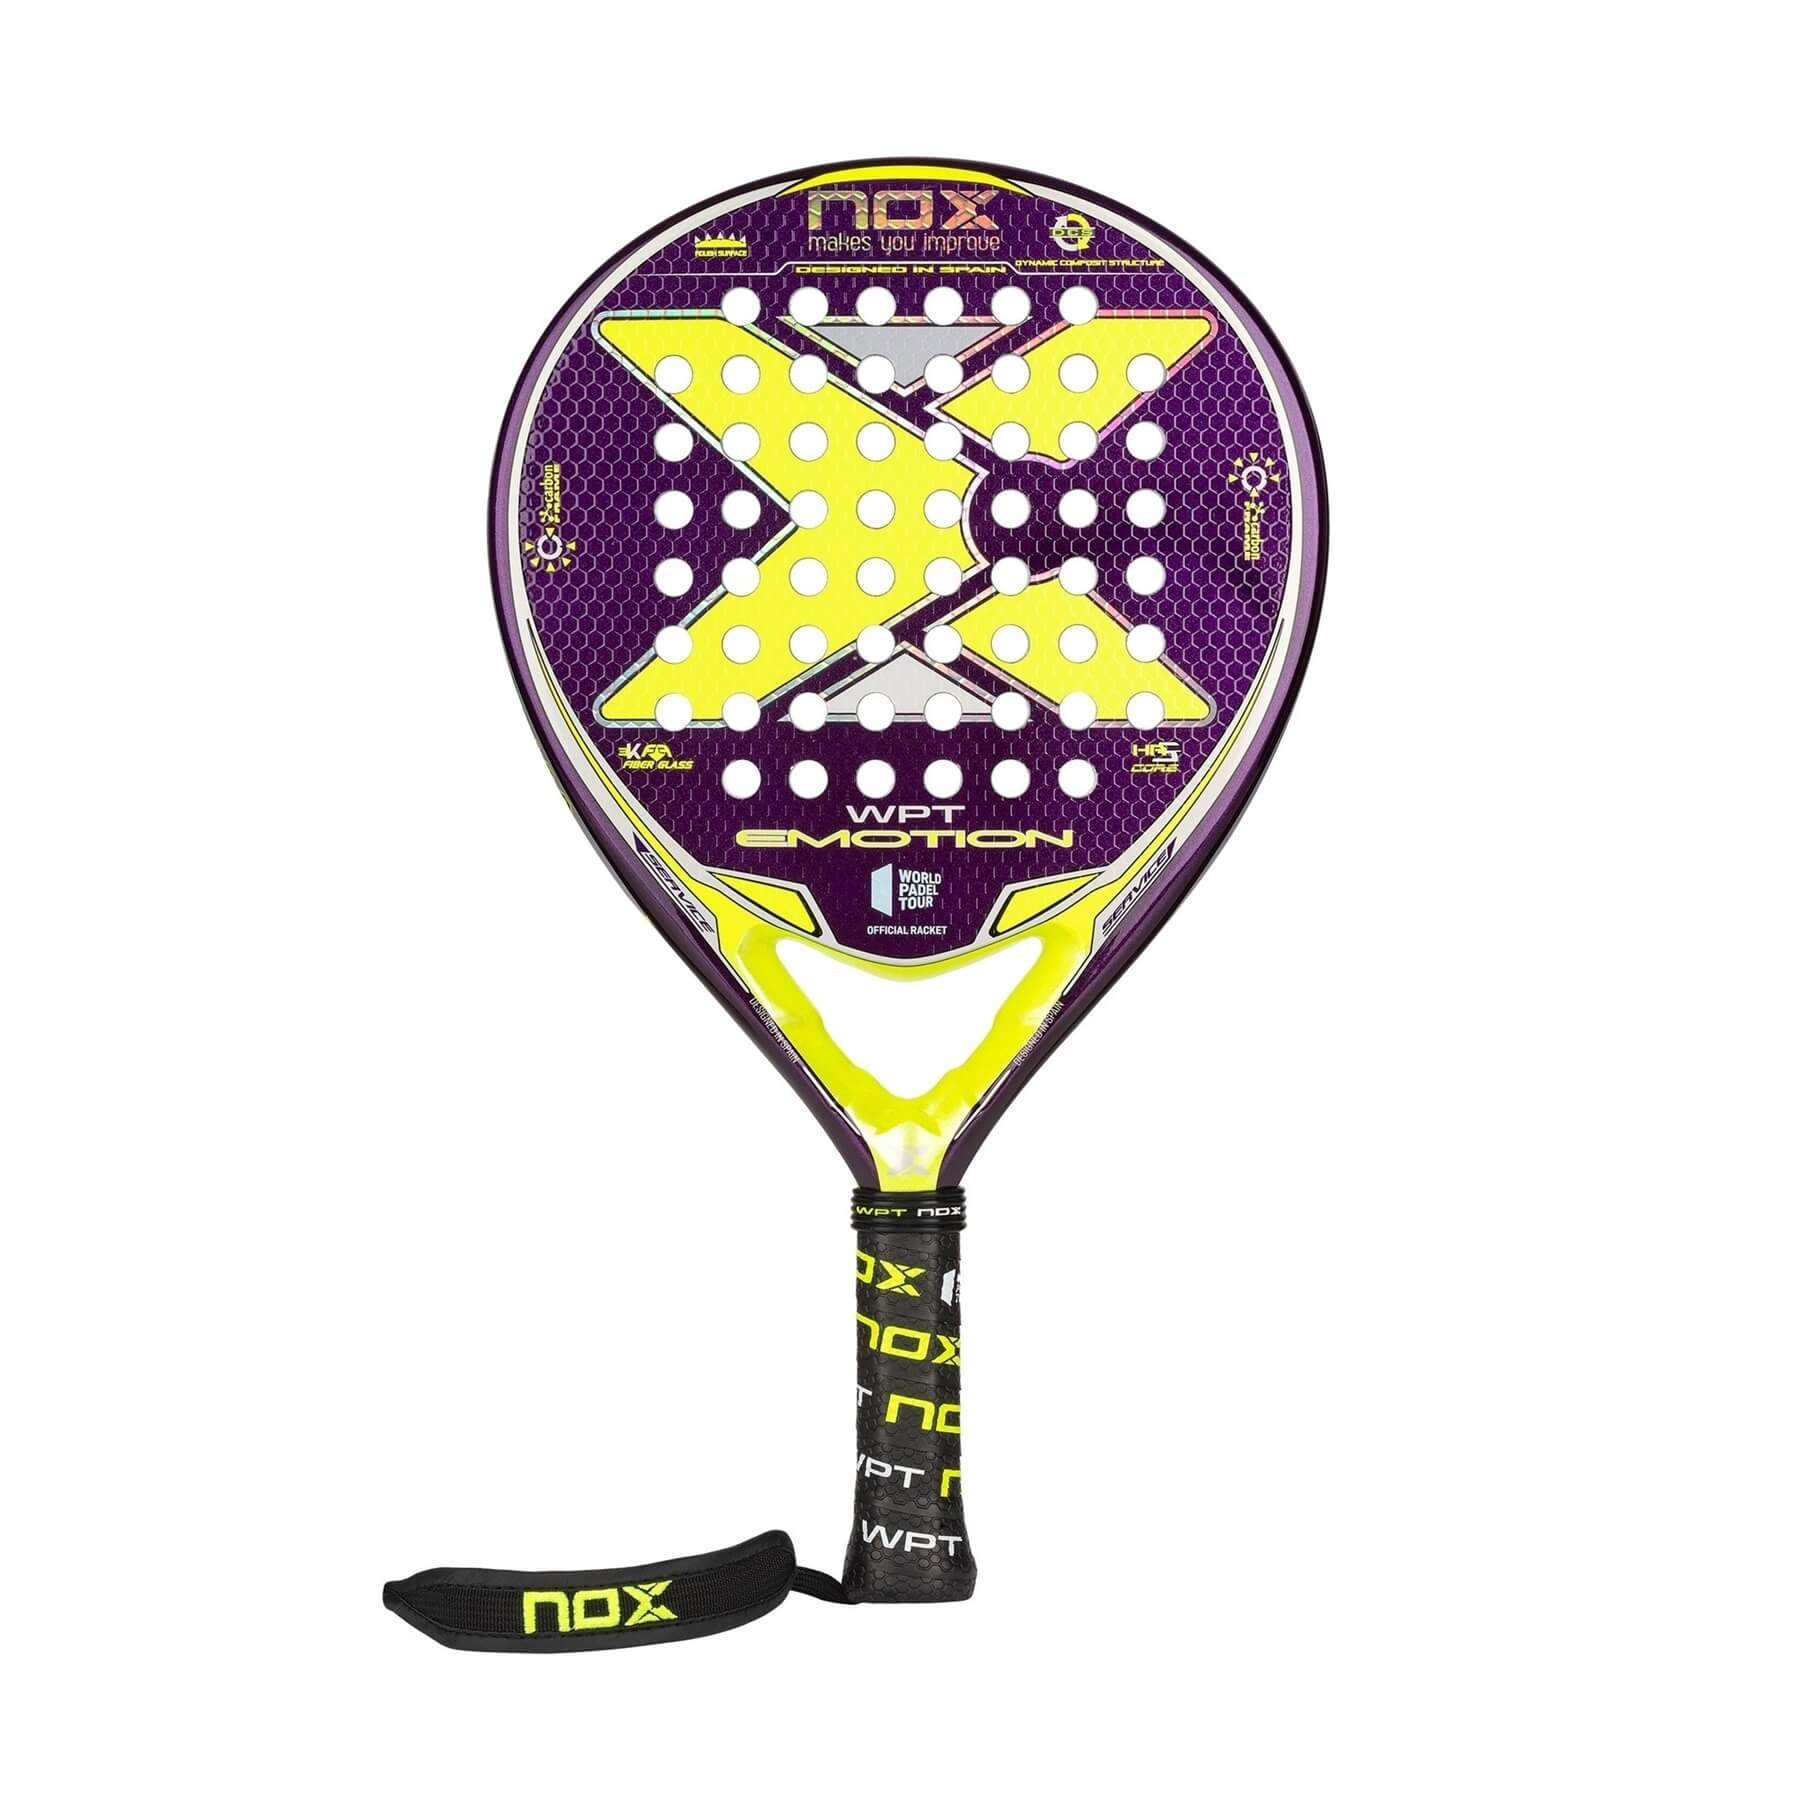 Nox Emotion World Padel Tour Edition